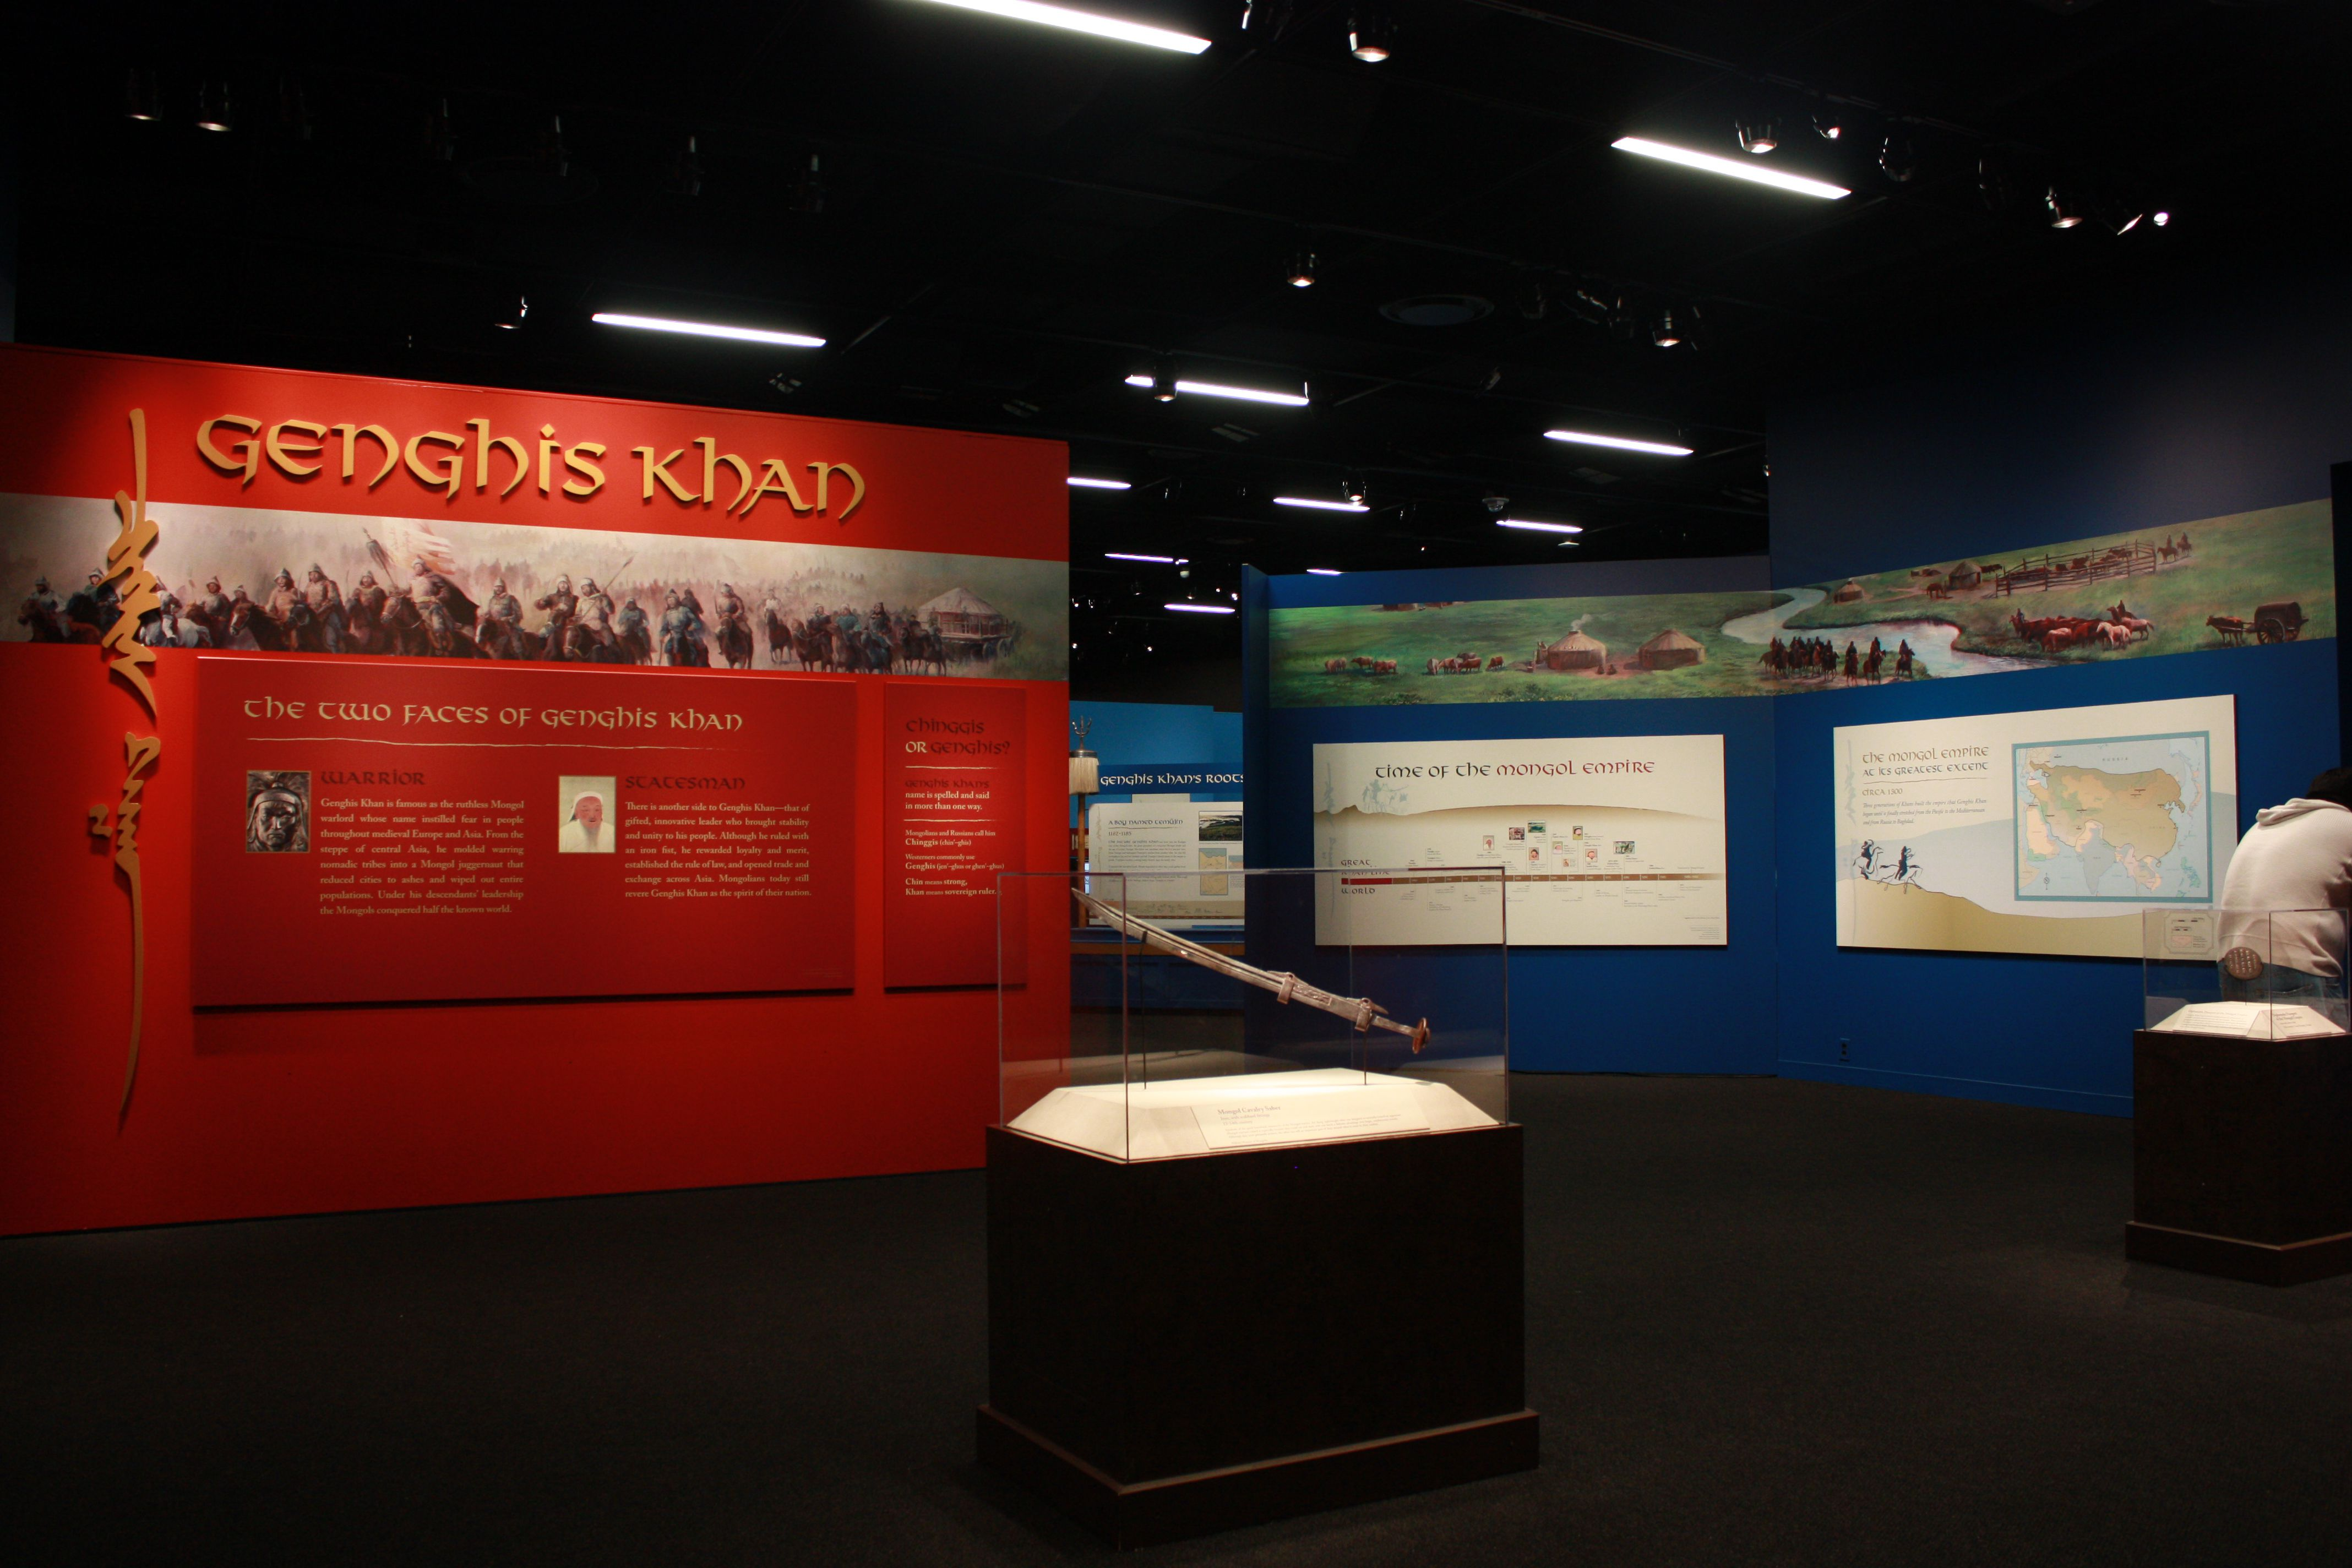 Genghis Khan and the Mongol Empire exhibit entrance